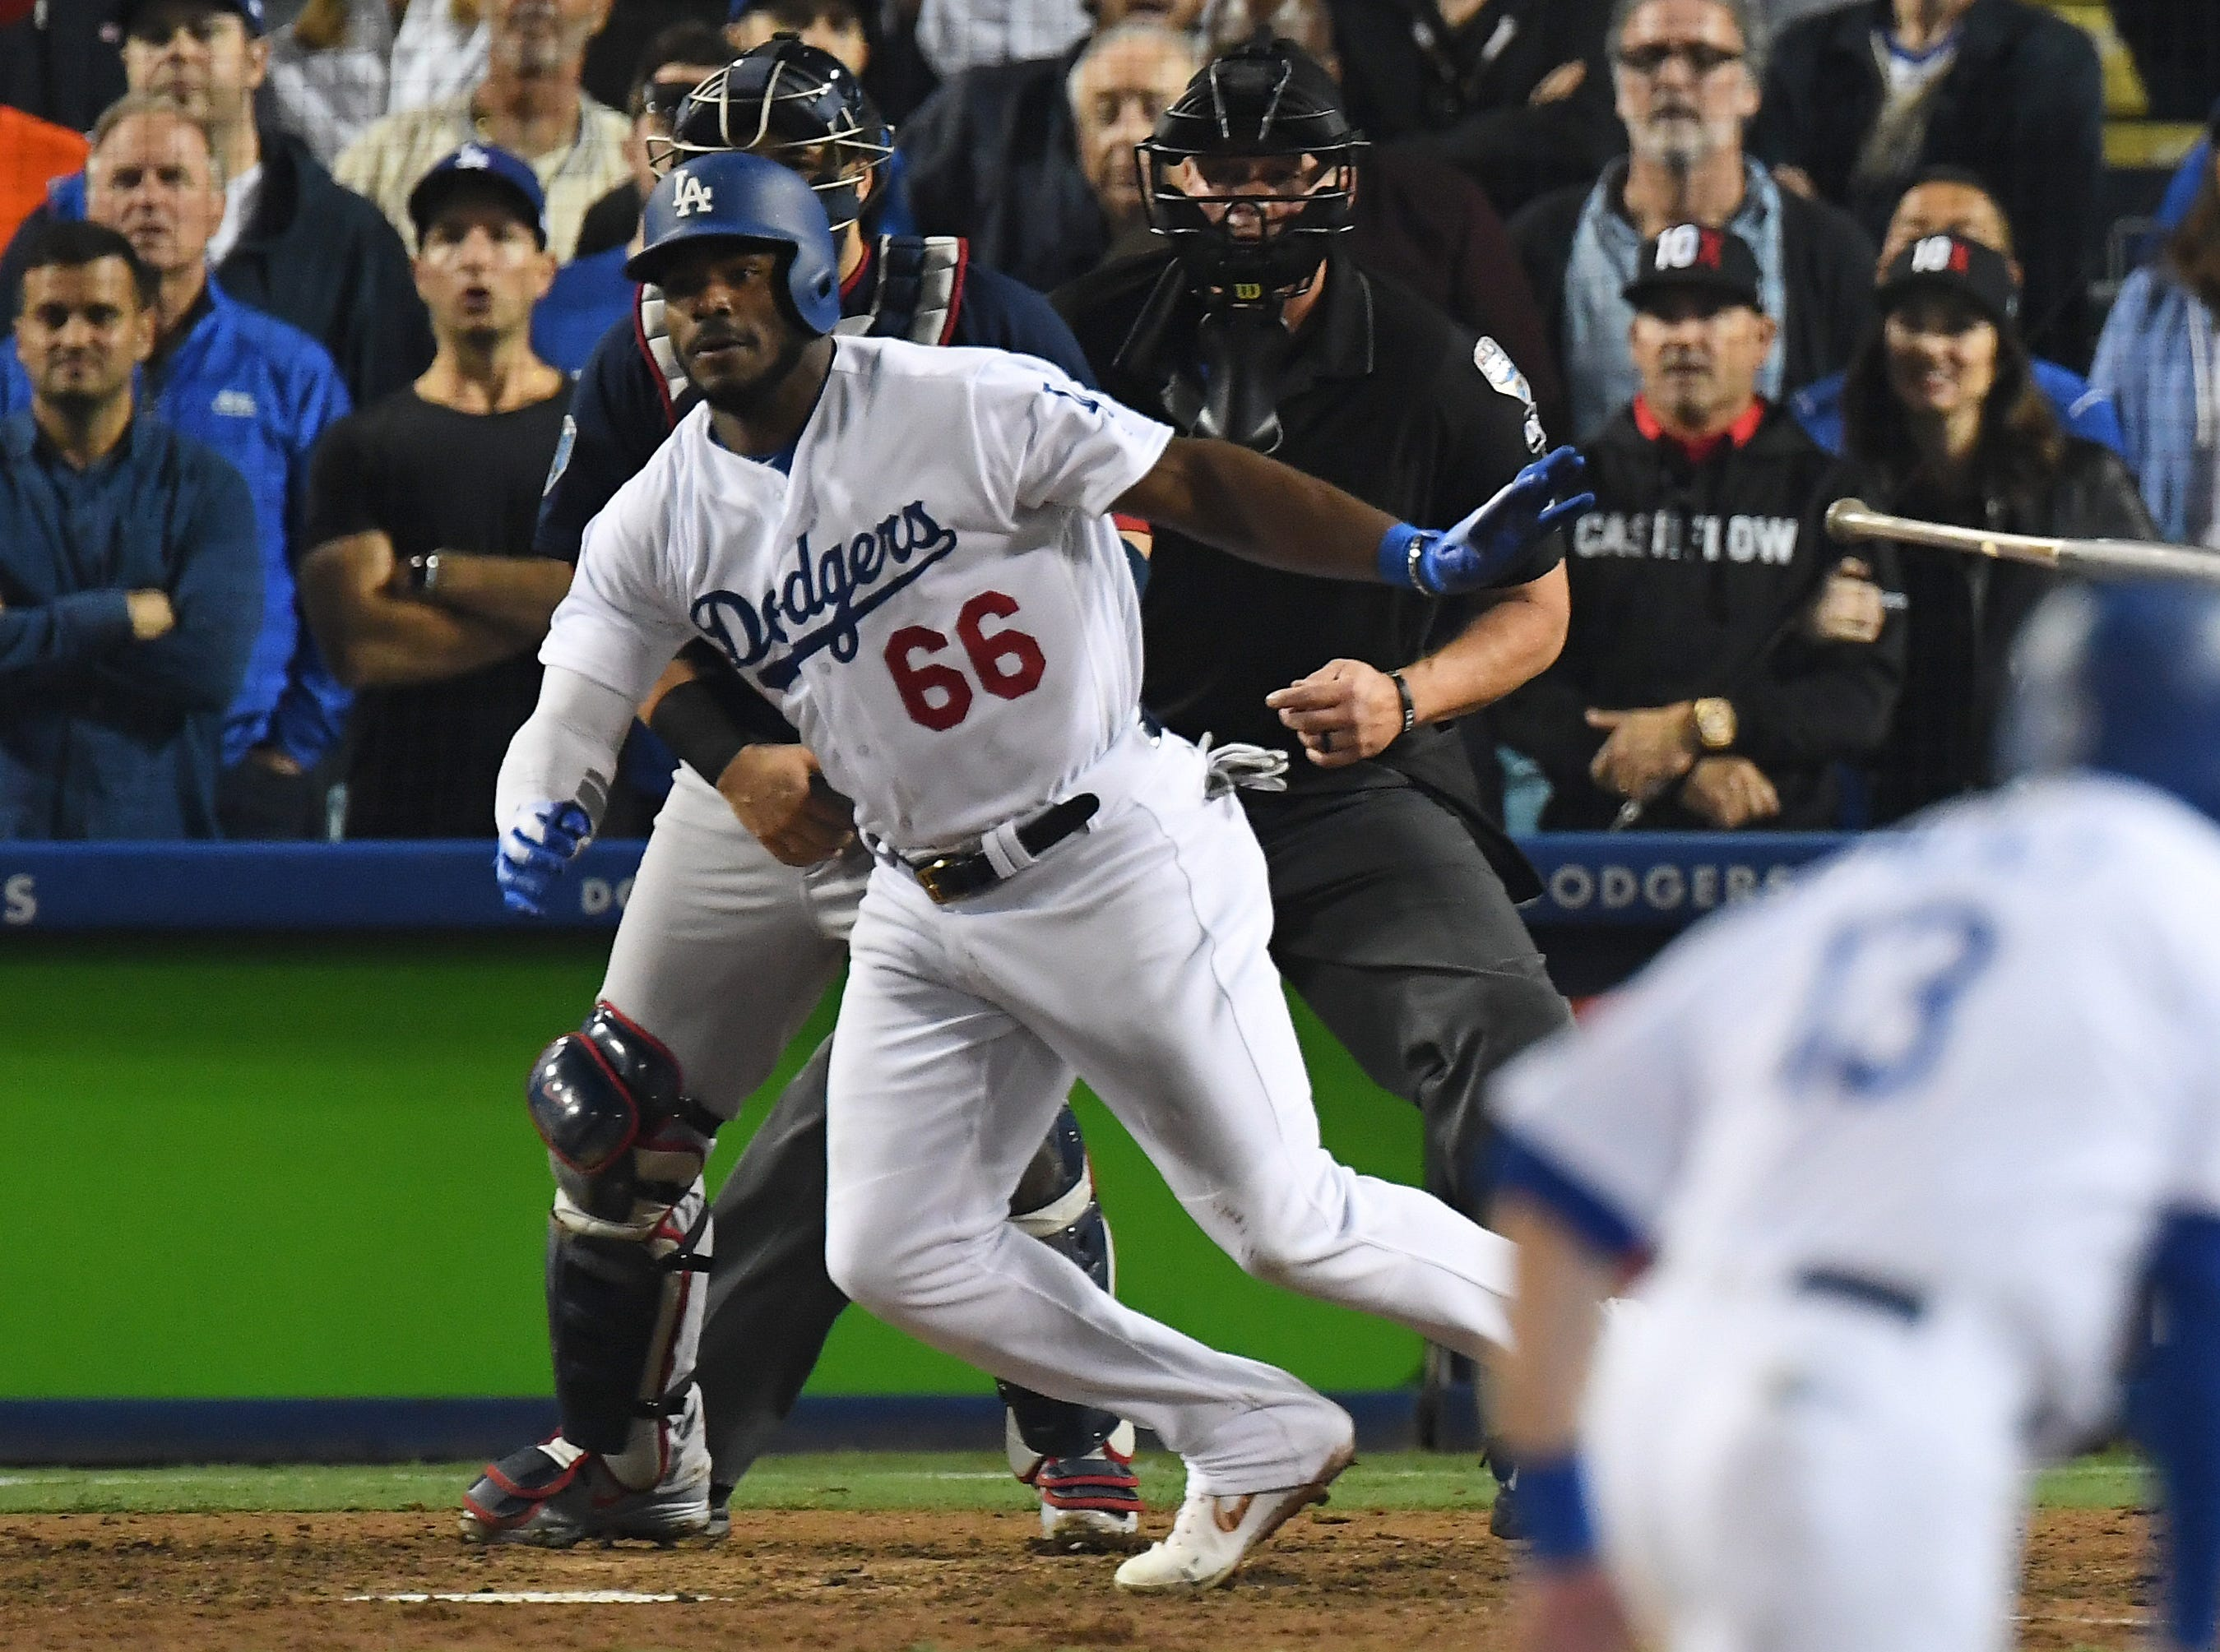 Game 3 at Dodger Stadium: Yasiel Puig hits an infield single that scored the tying run in the 13th inning.